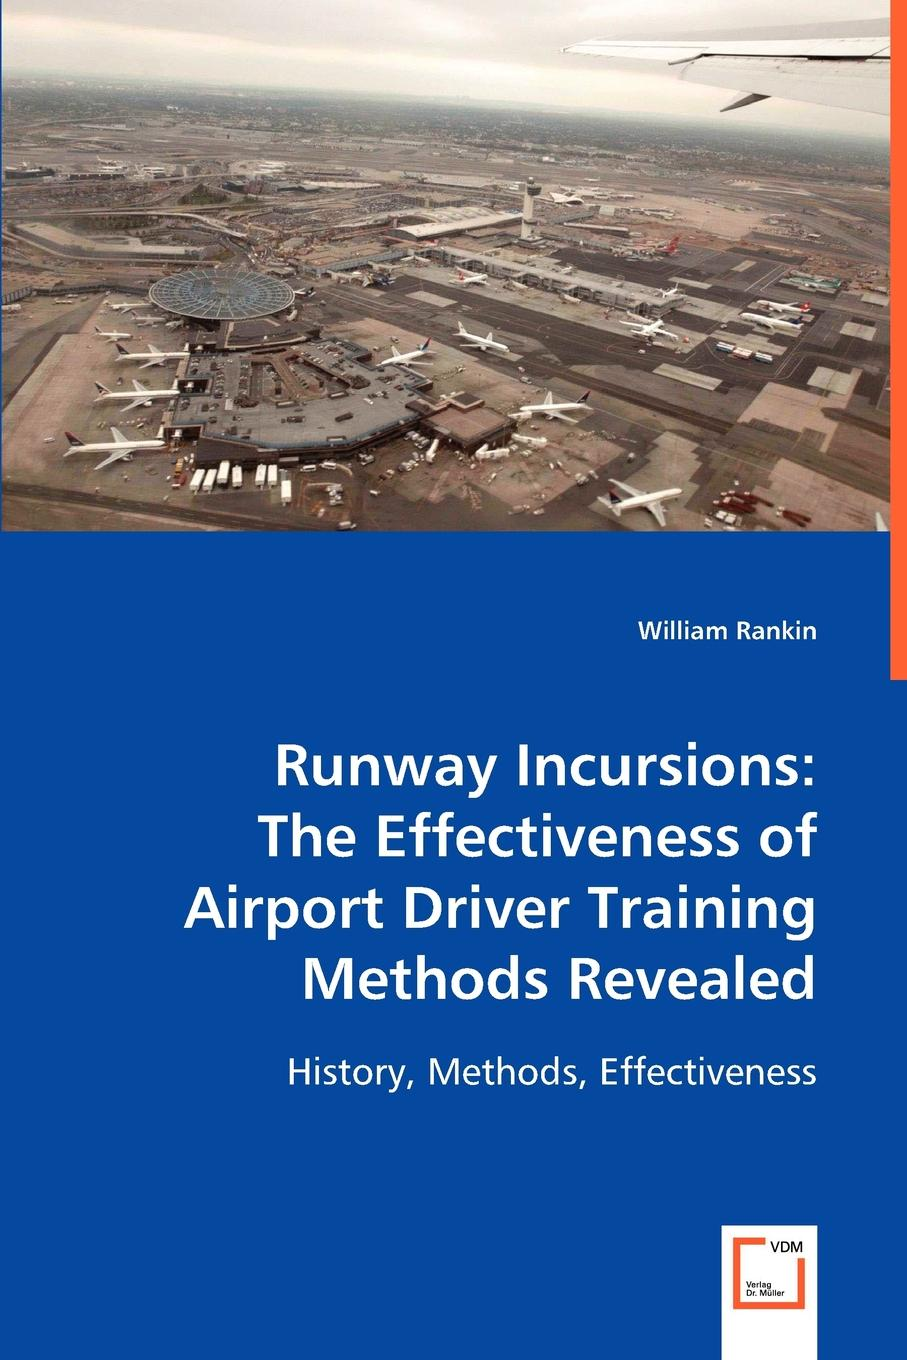 William Rankin Runway Incursions. The Effectiveness of Airport Driver Training Methods Revealed